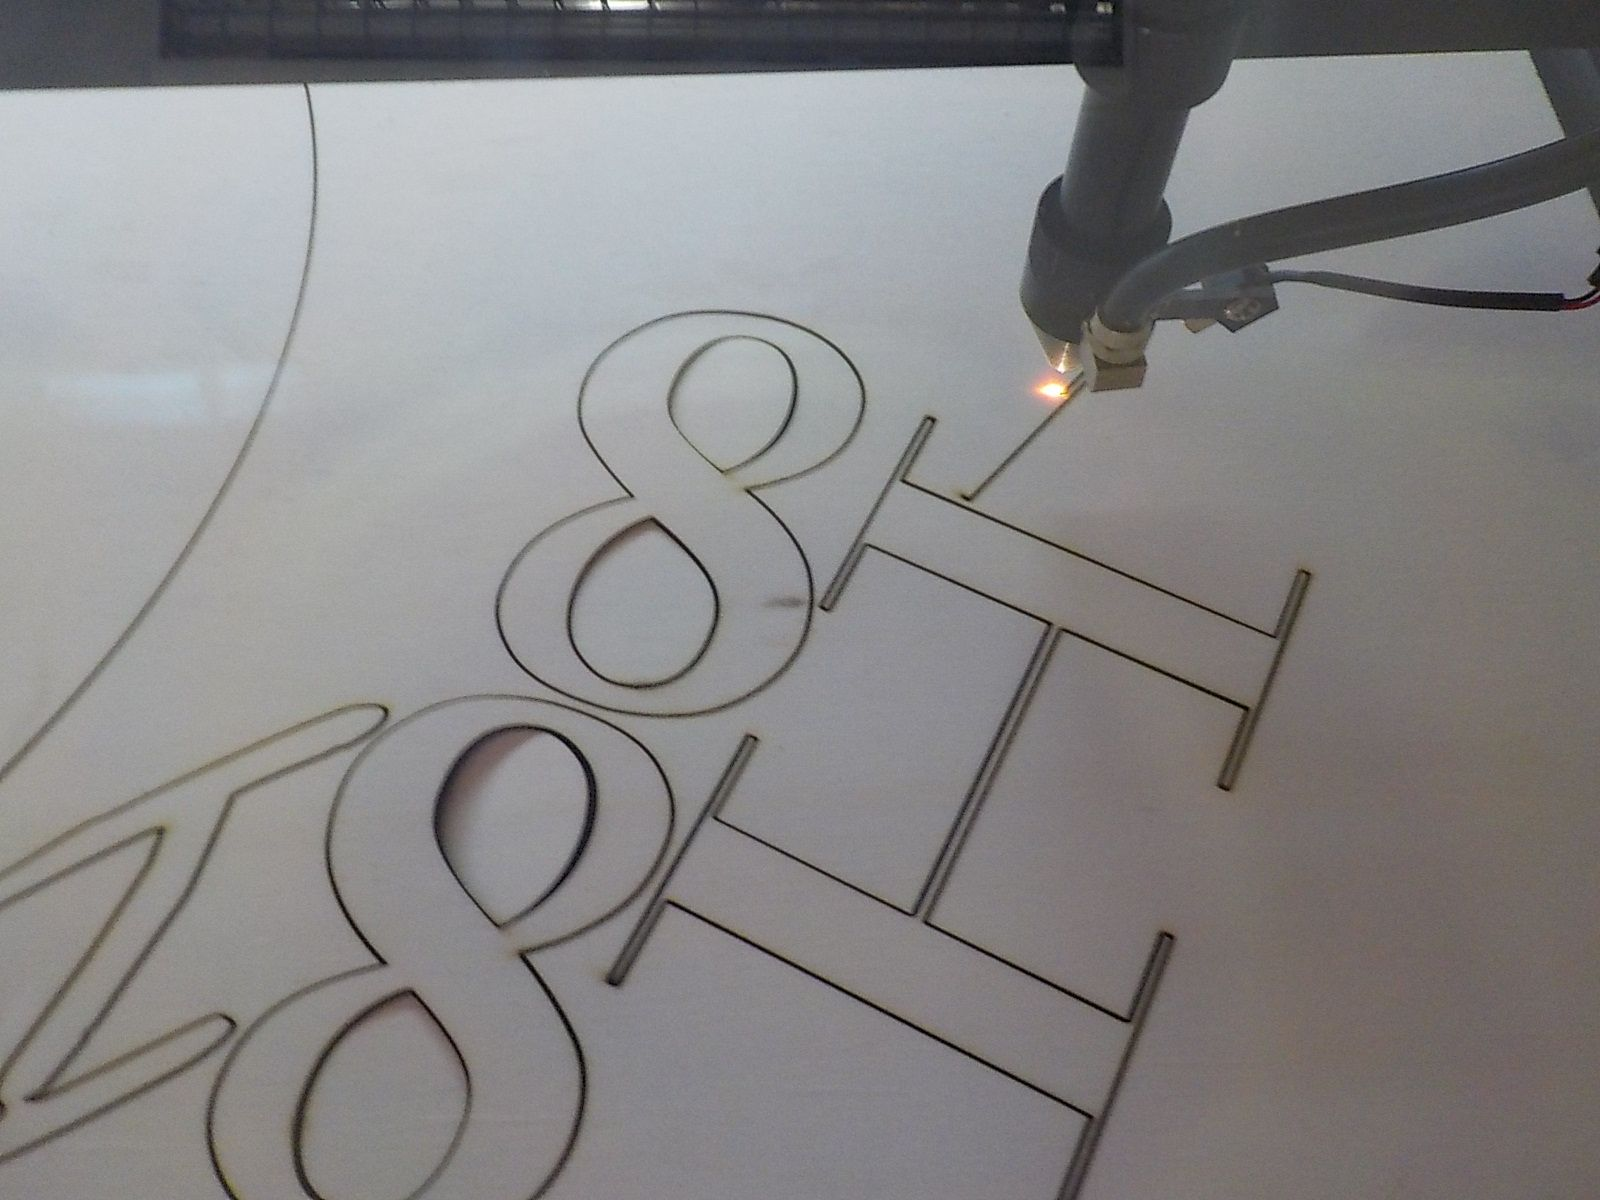 Lasercutting 10 mm plywood letters